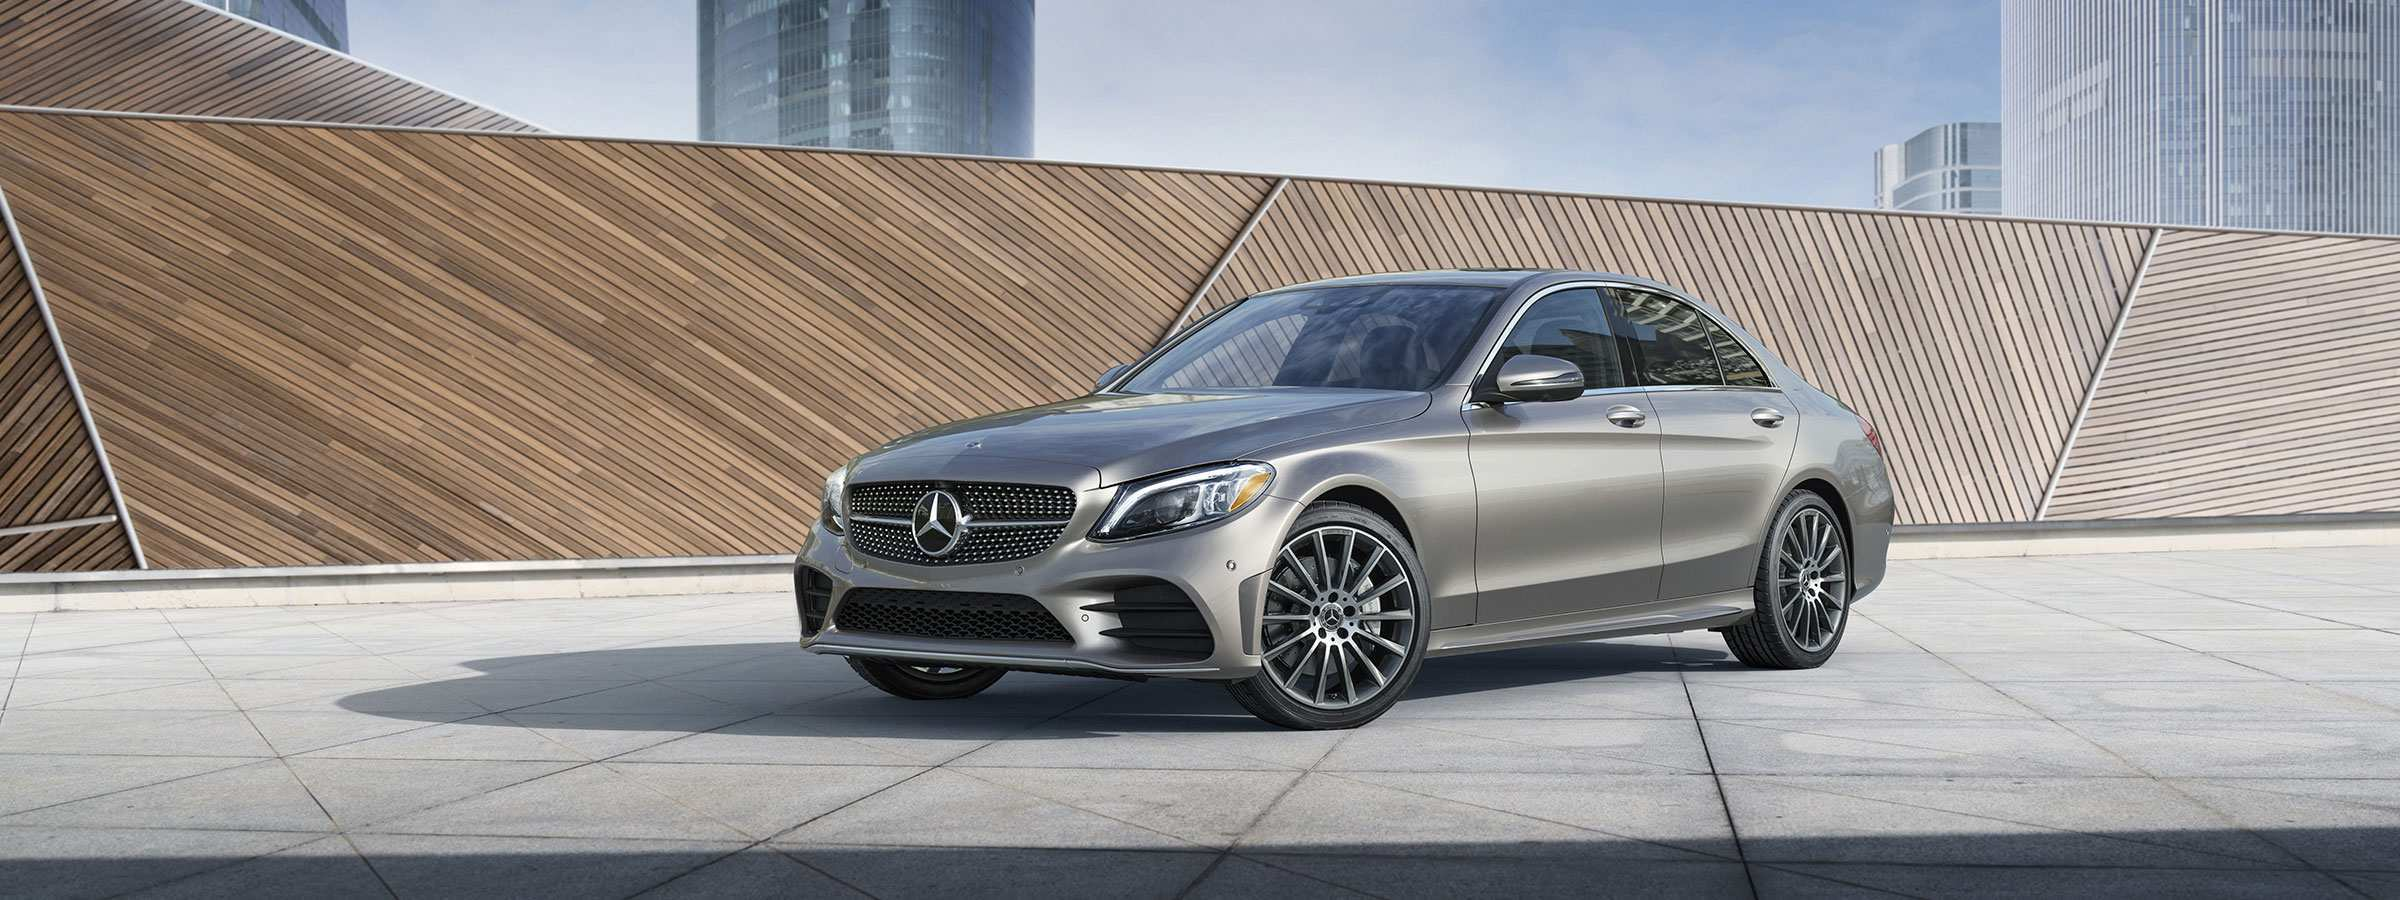 38 A 2019 Mercedes C Class Redesign And Concept